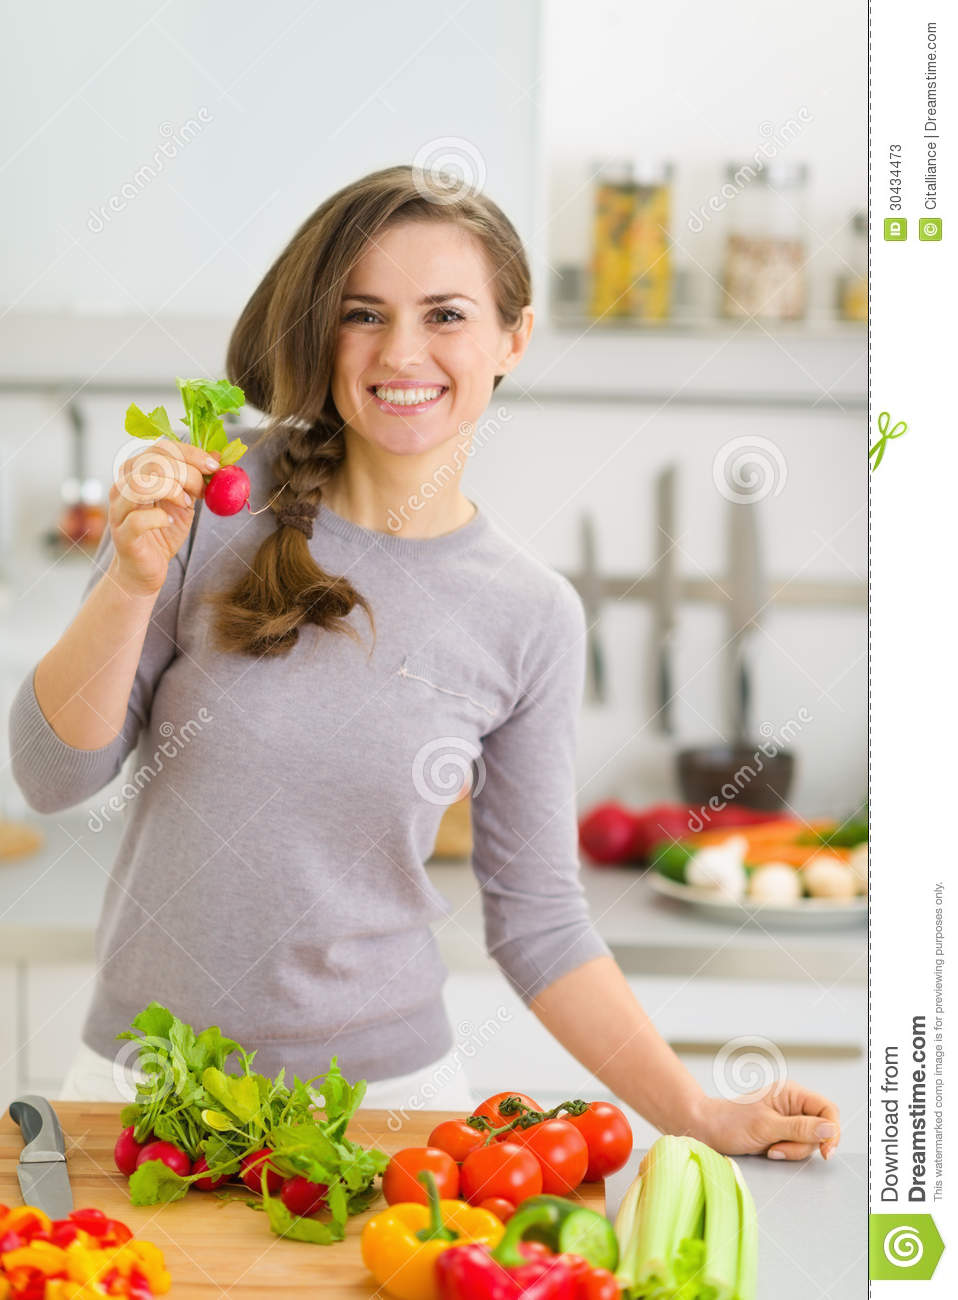 happy housewife in kitchen showing radish stock photos clipart of a house pencil drawing easy clipart of a home